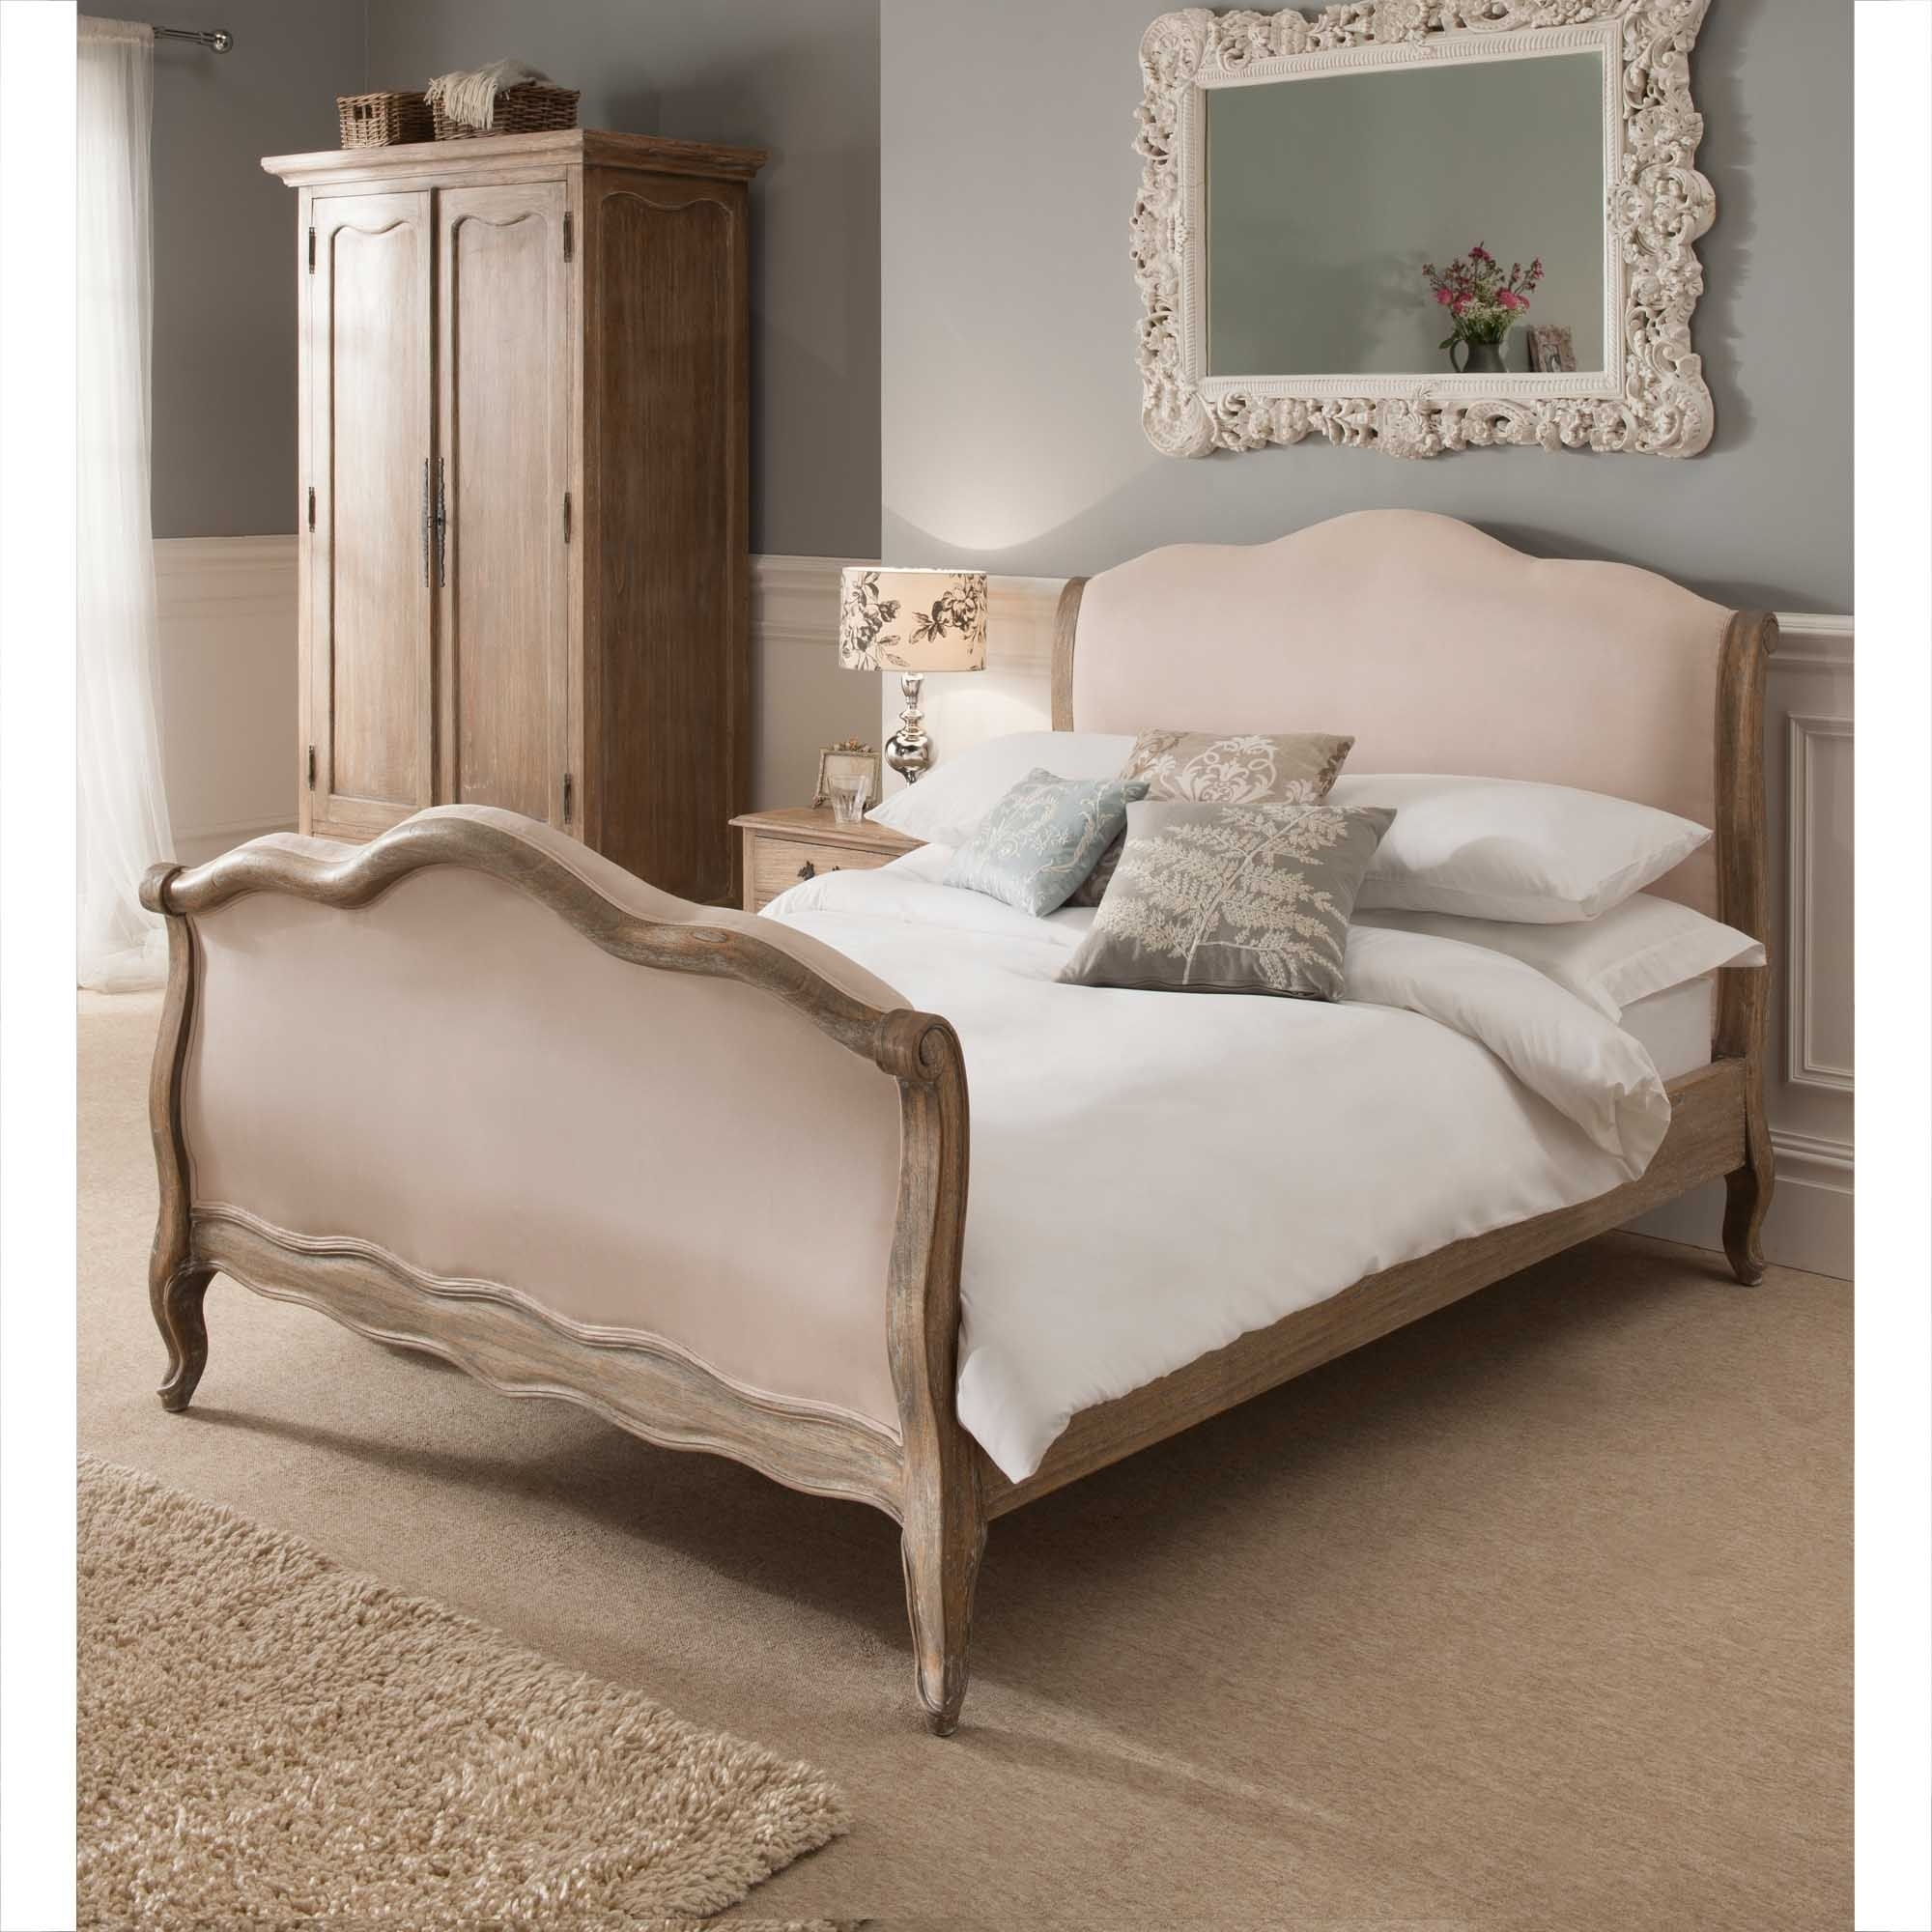 Different Types of Bedroom Furniture Used Today | Homes ...